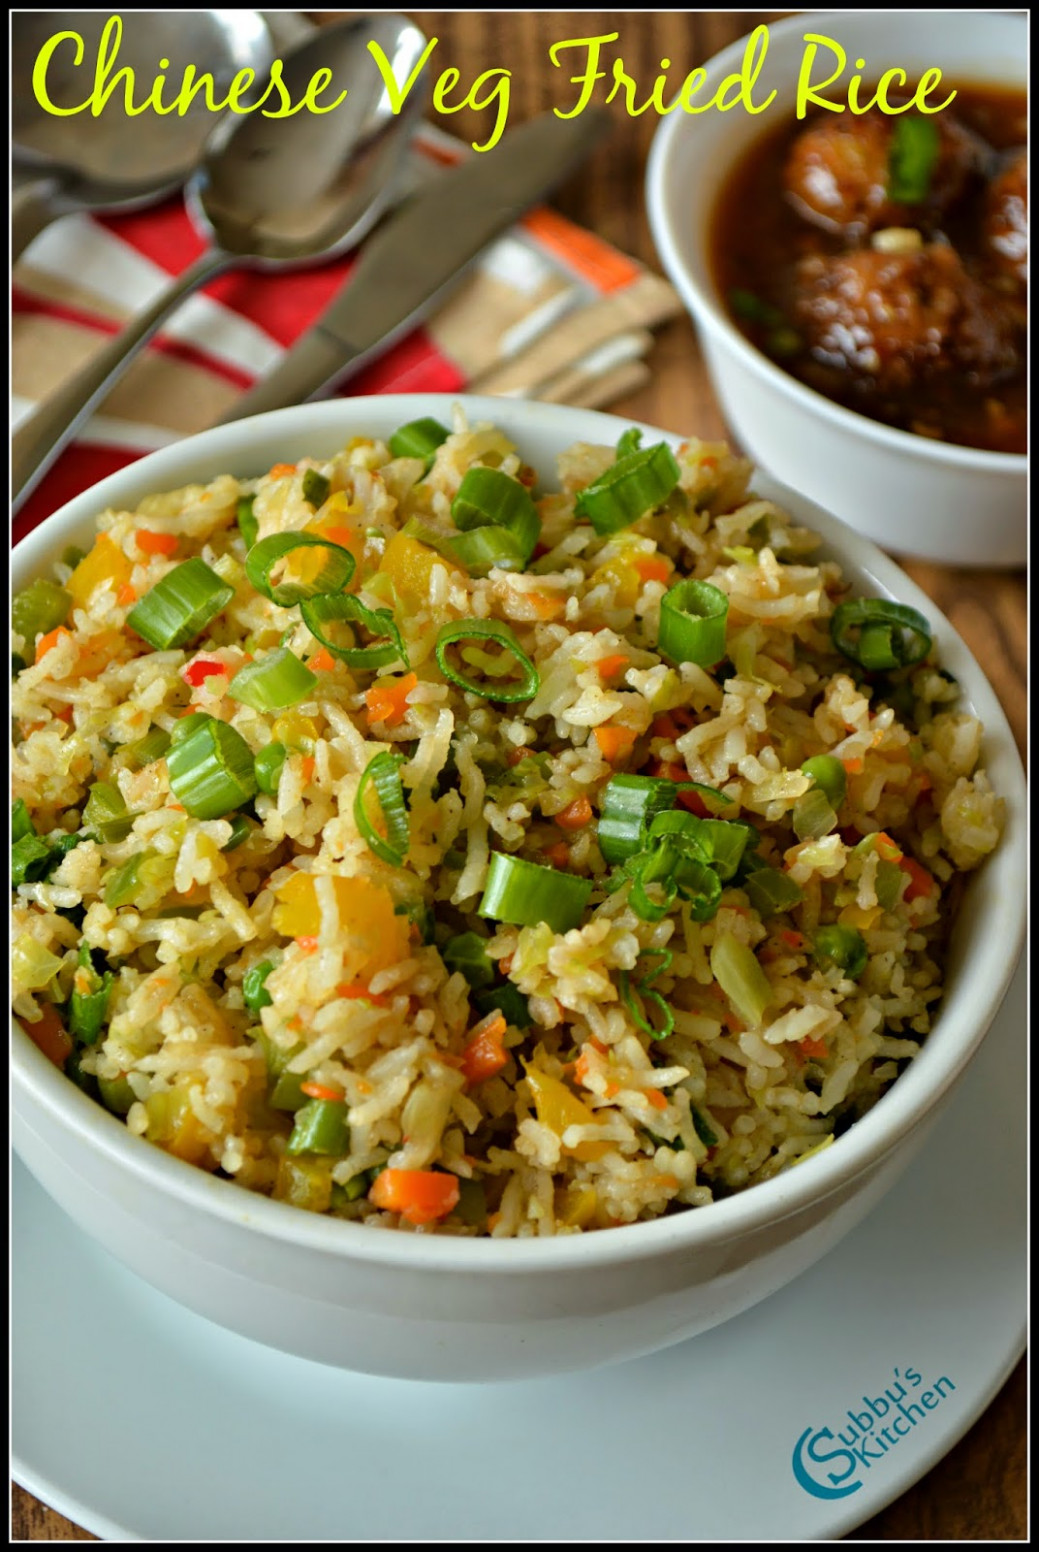 Chinese Vegetable Fried Rice Recipe | Subbus Kitchen - recipes with rice vegetarian